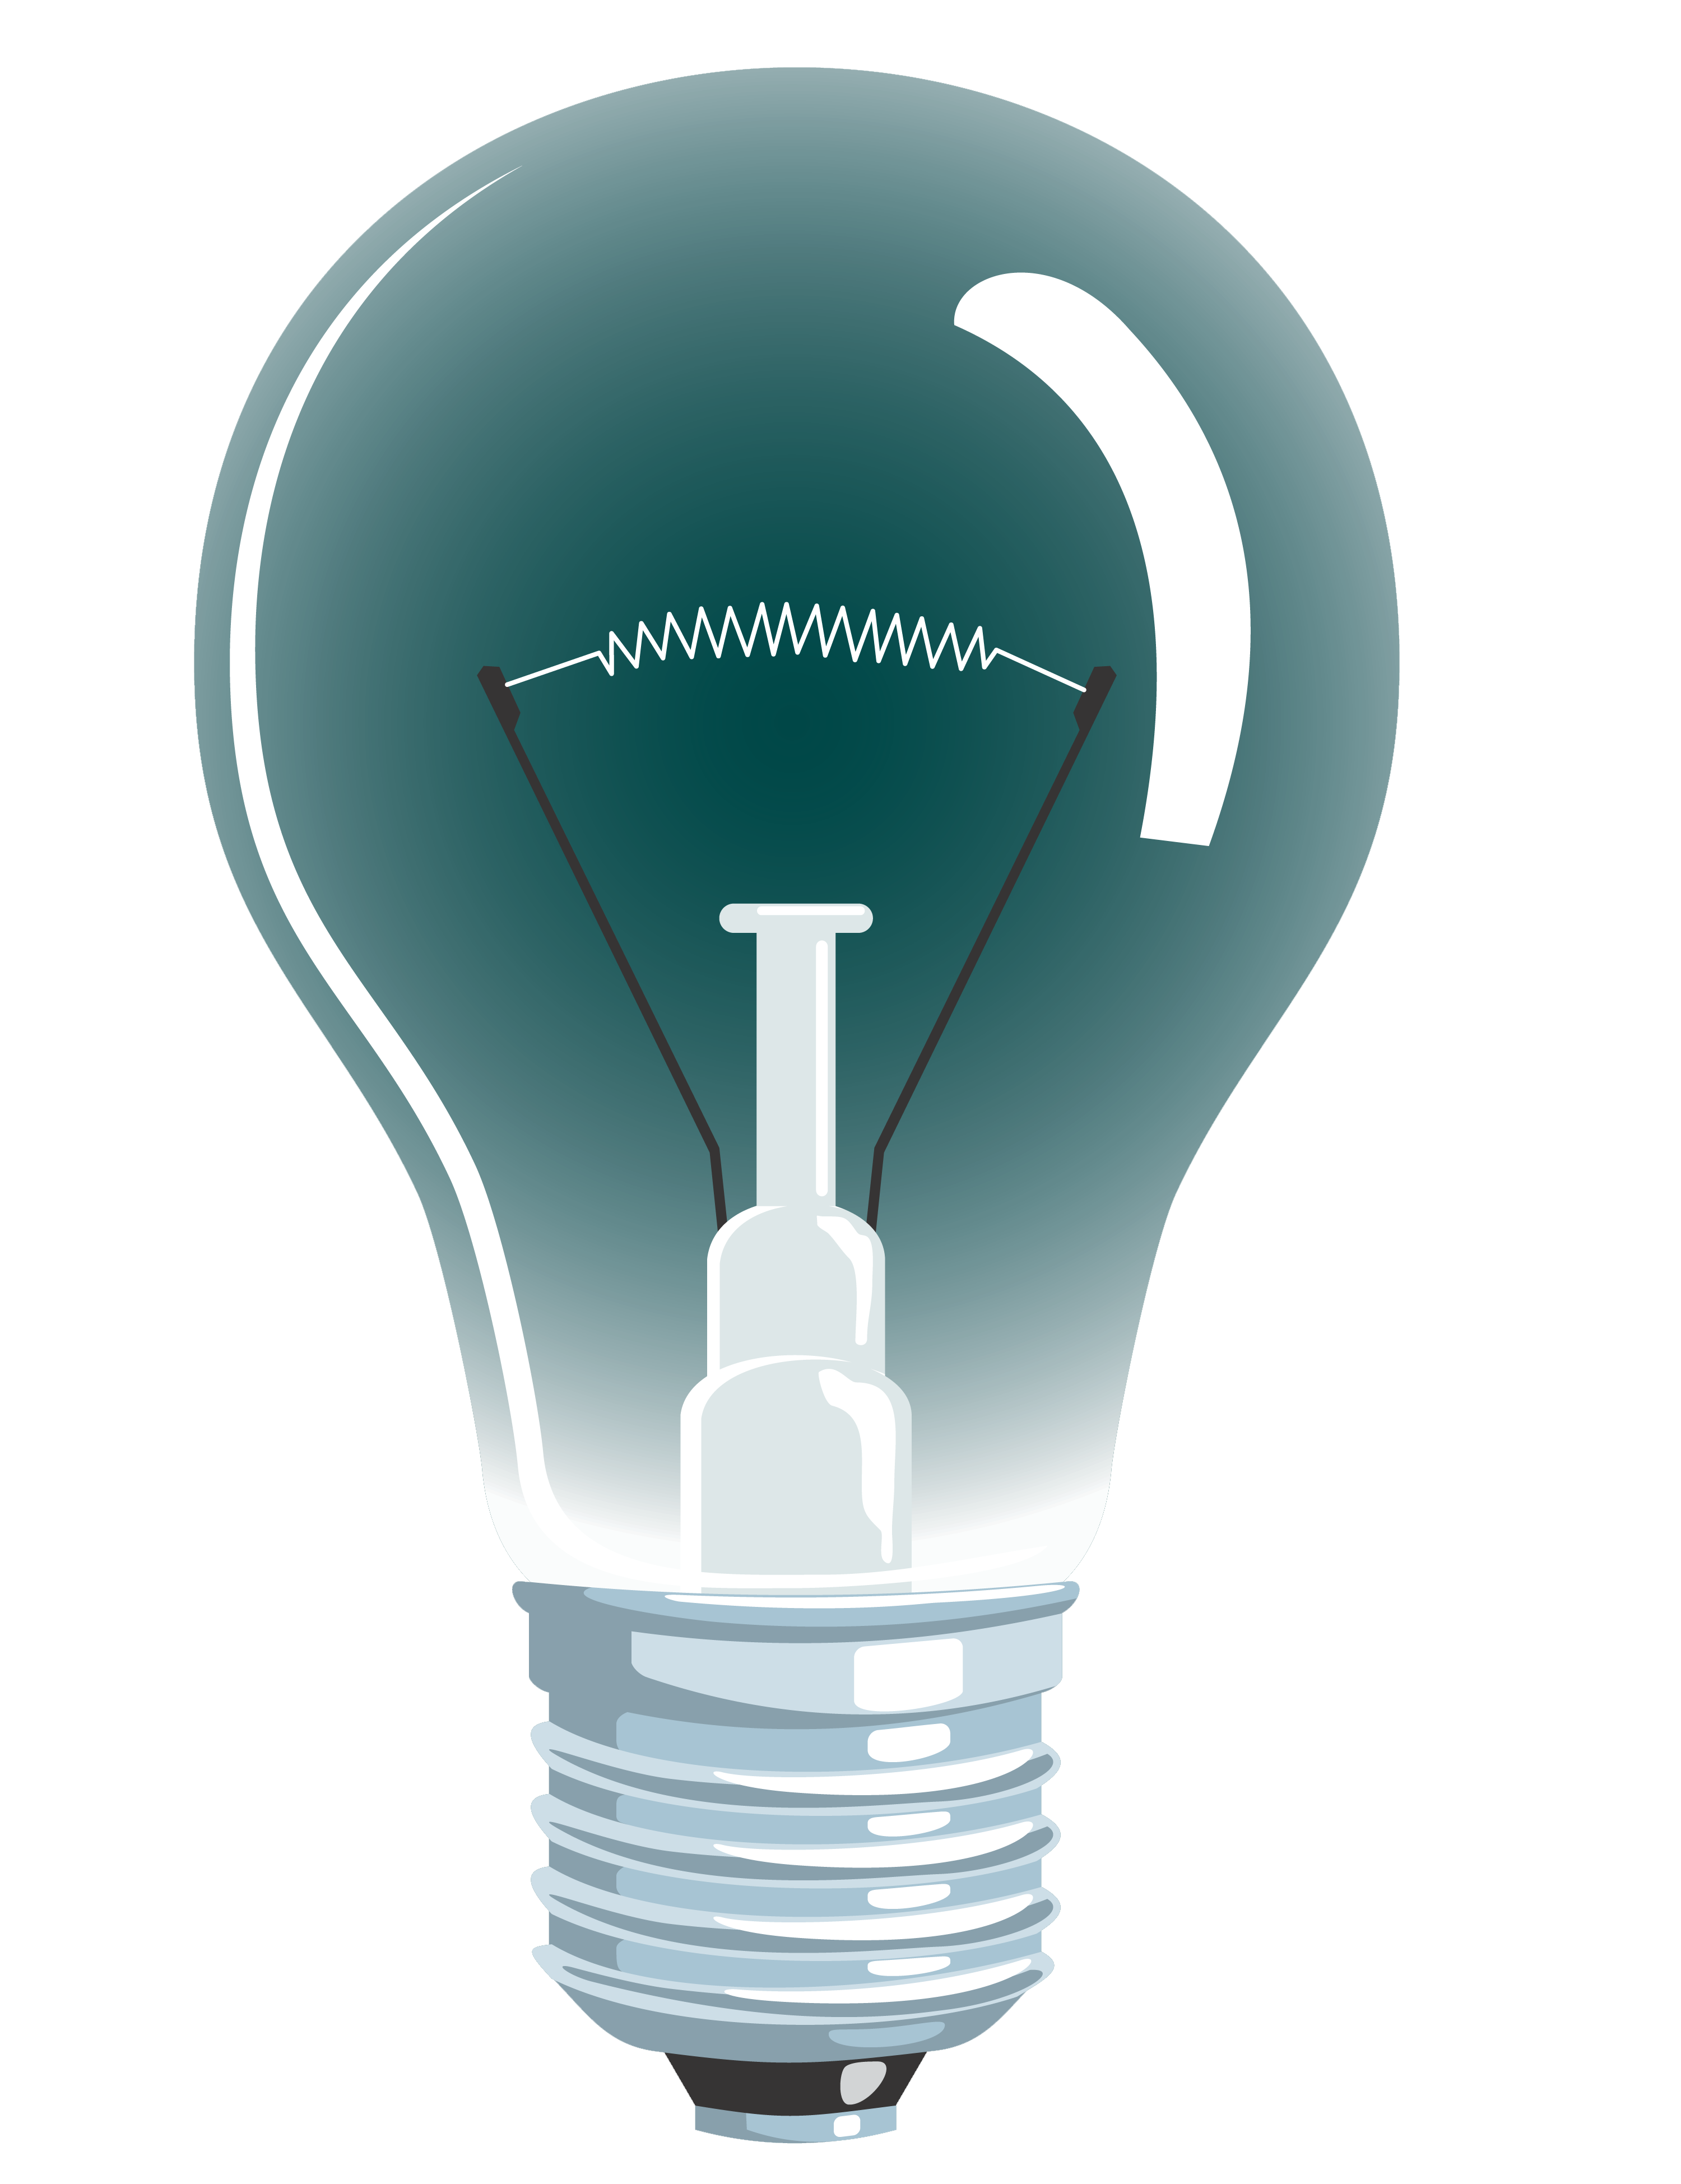 Get Lightbulb Png Pictures image #848